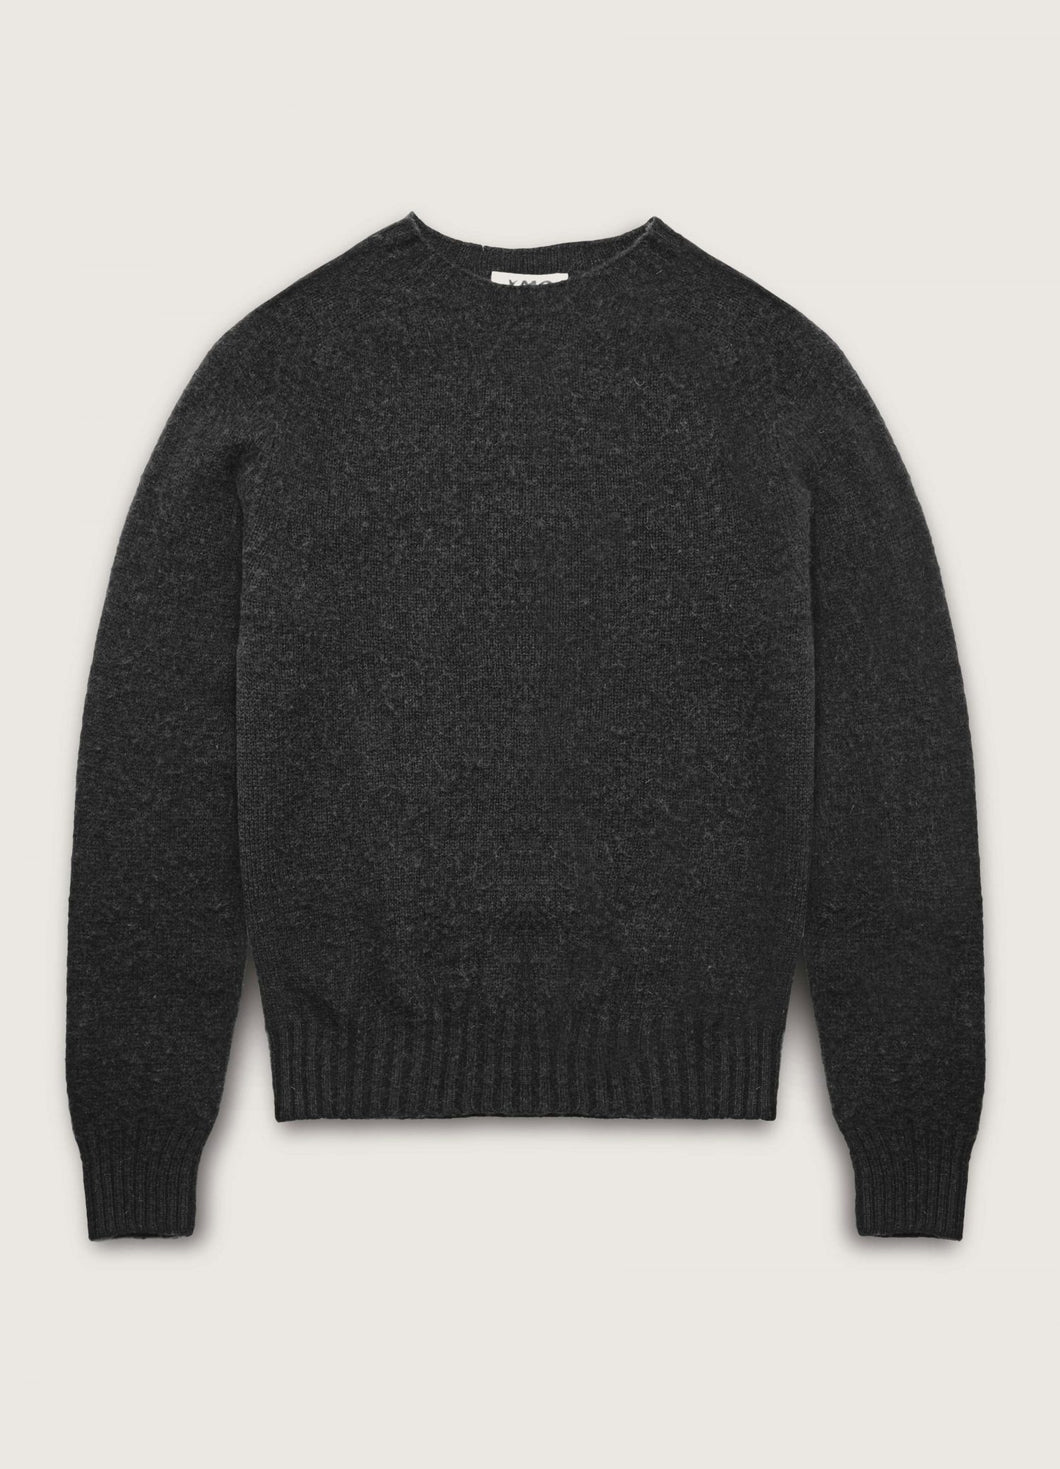 YMC - Suede Head Lambswool Crew - Charcoal